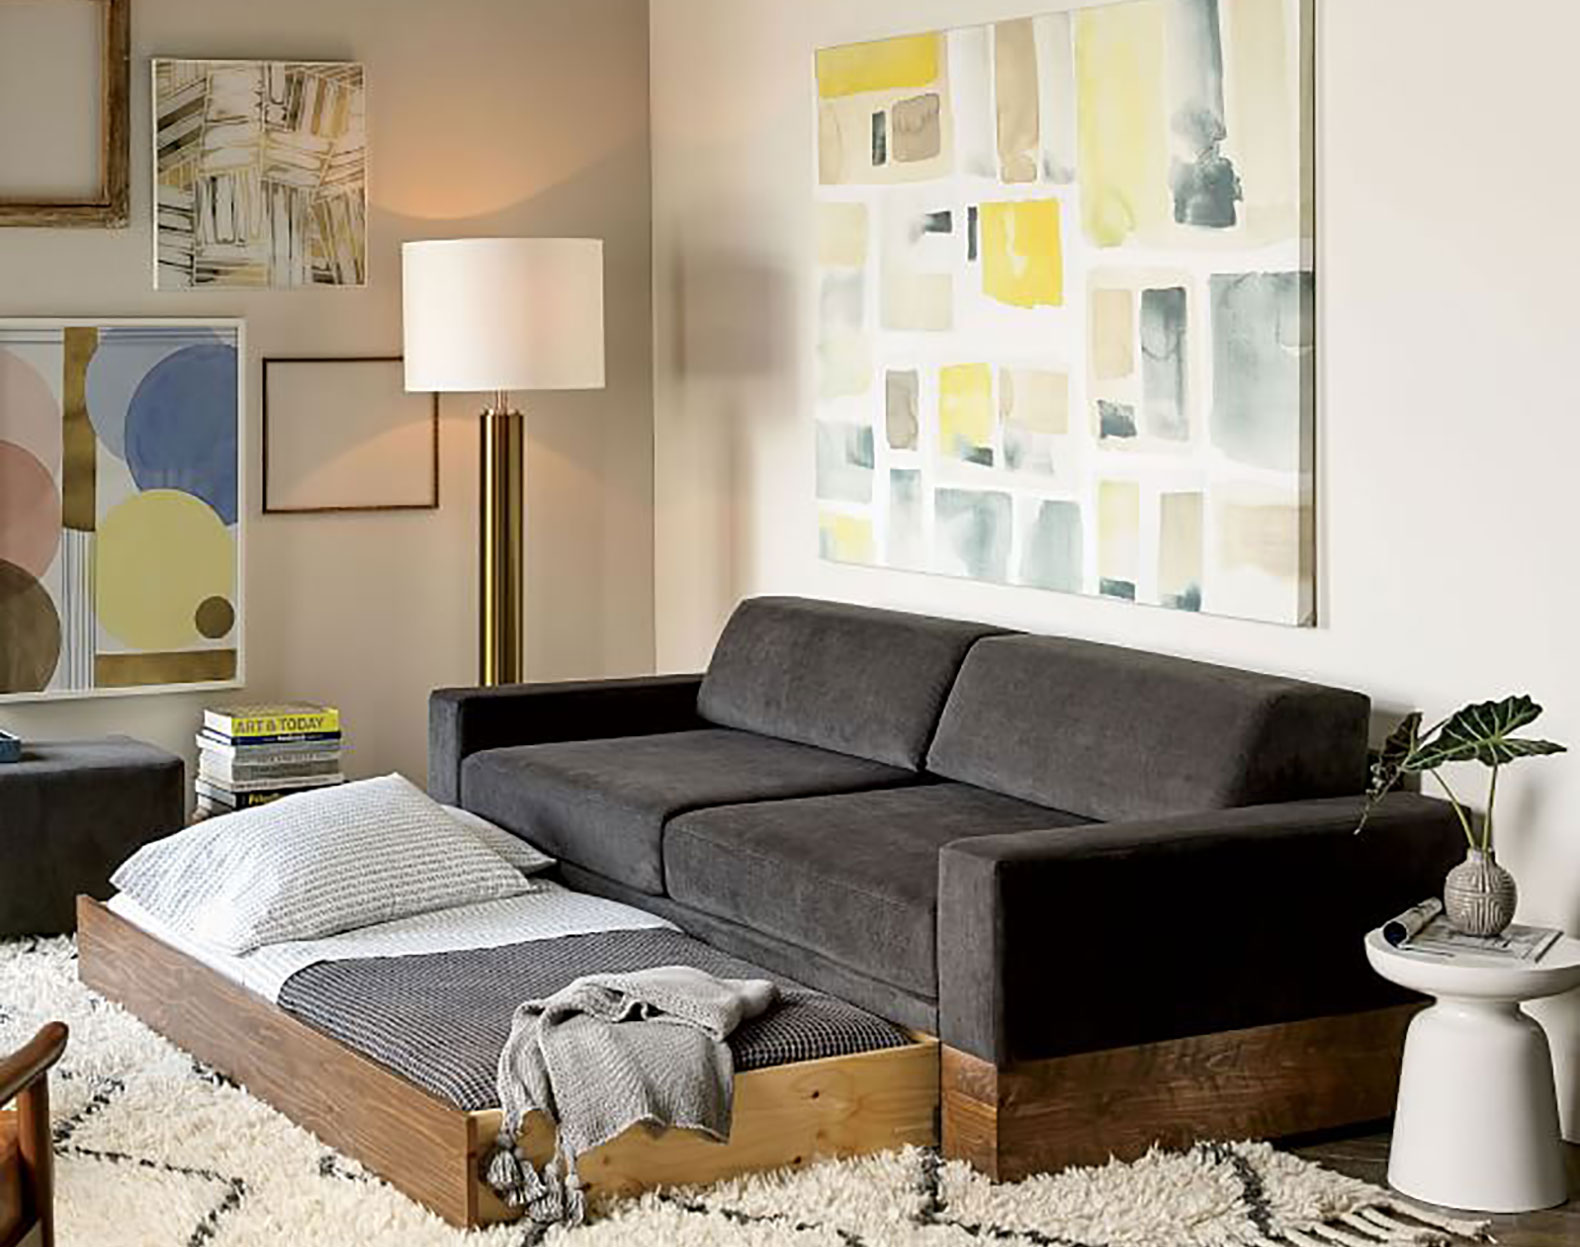 SpringHill Suites and West Elm launch new line of stylish double